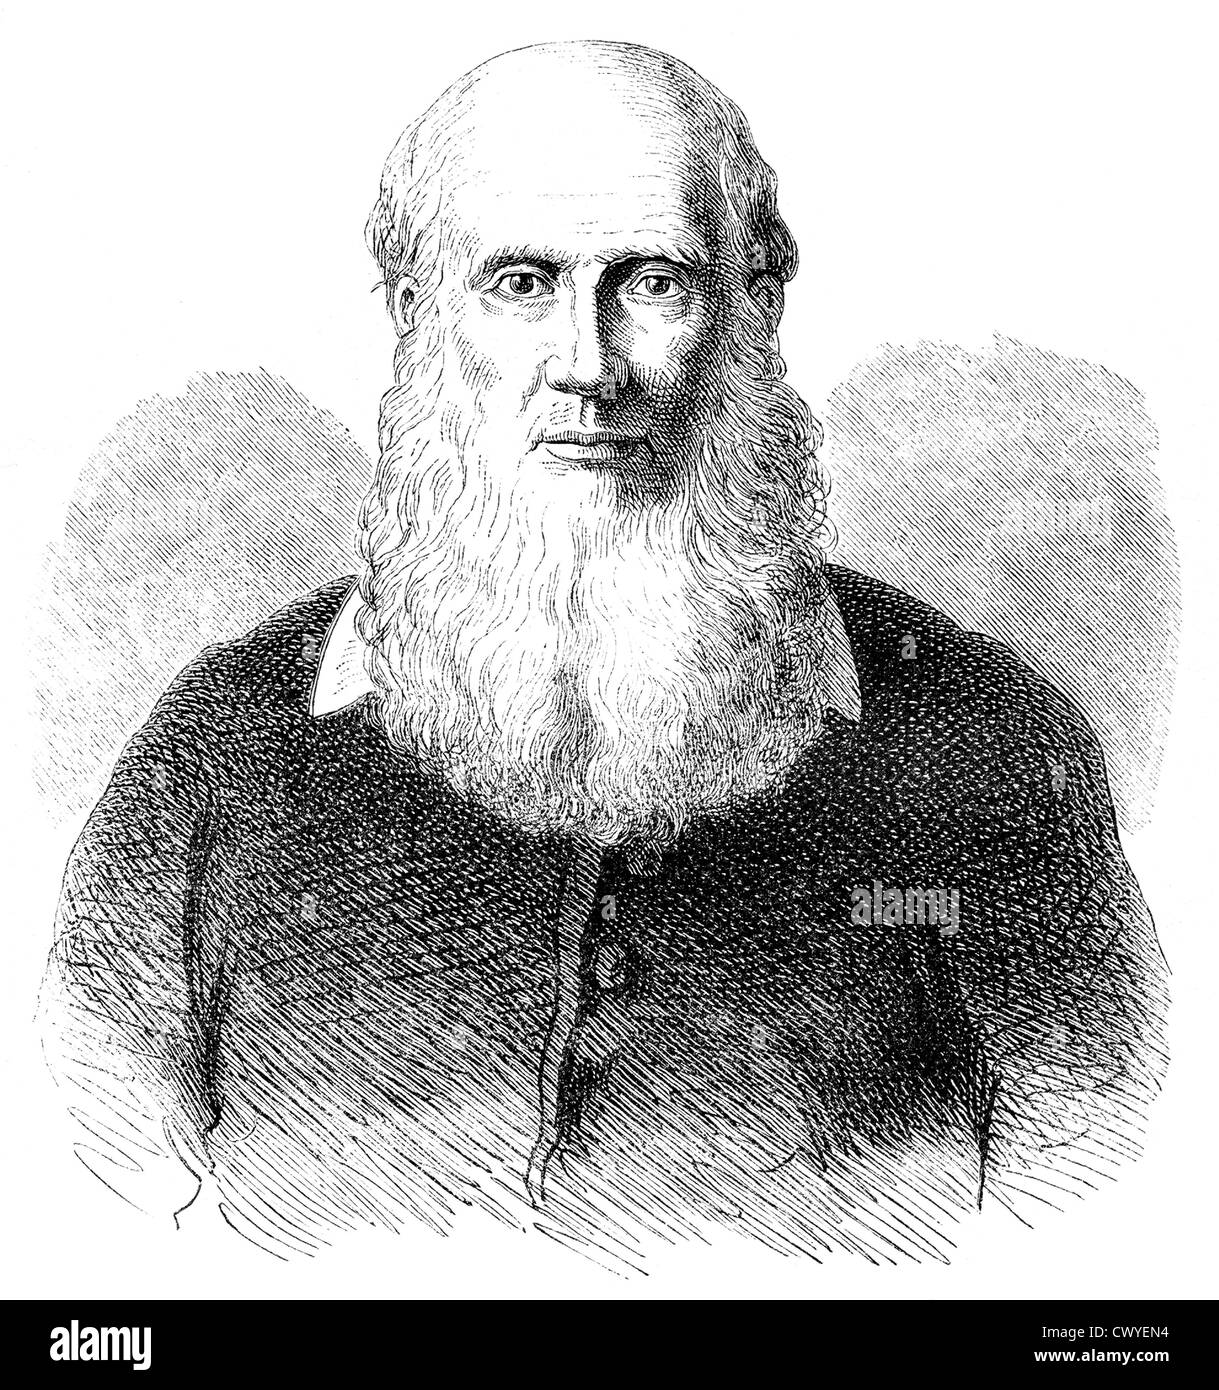 Friedrich Ludwig Jahn, 1778 - 1852, the initiator of the German gymnastics movement, - Stock Image